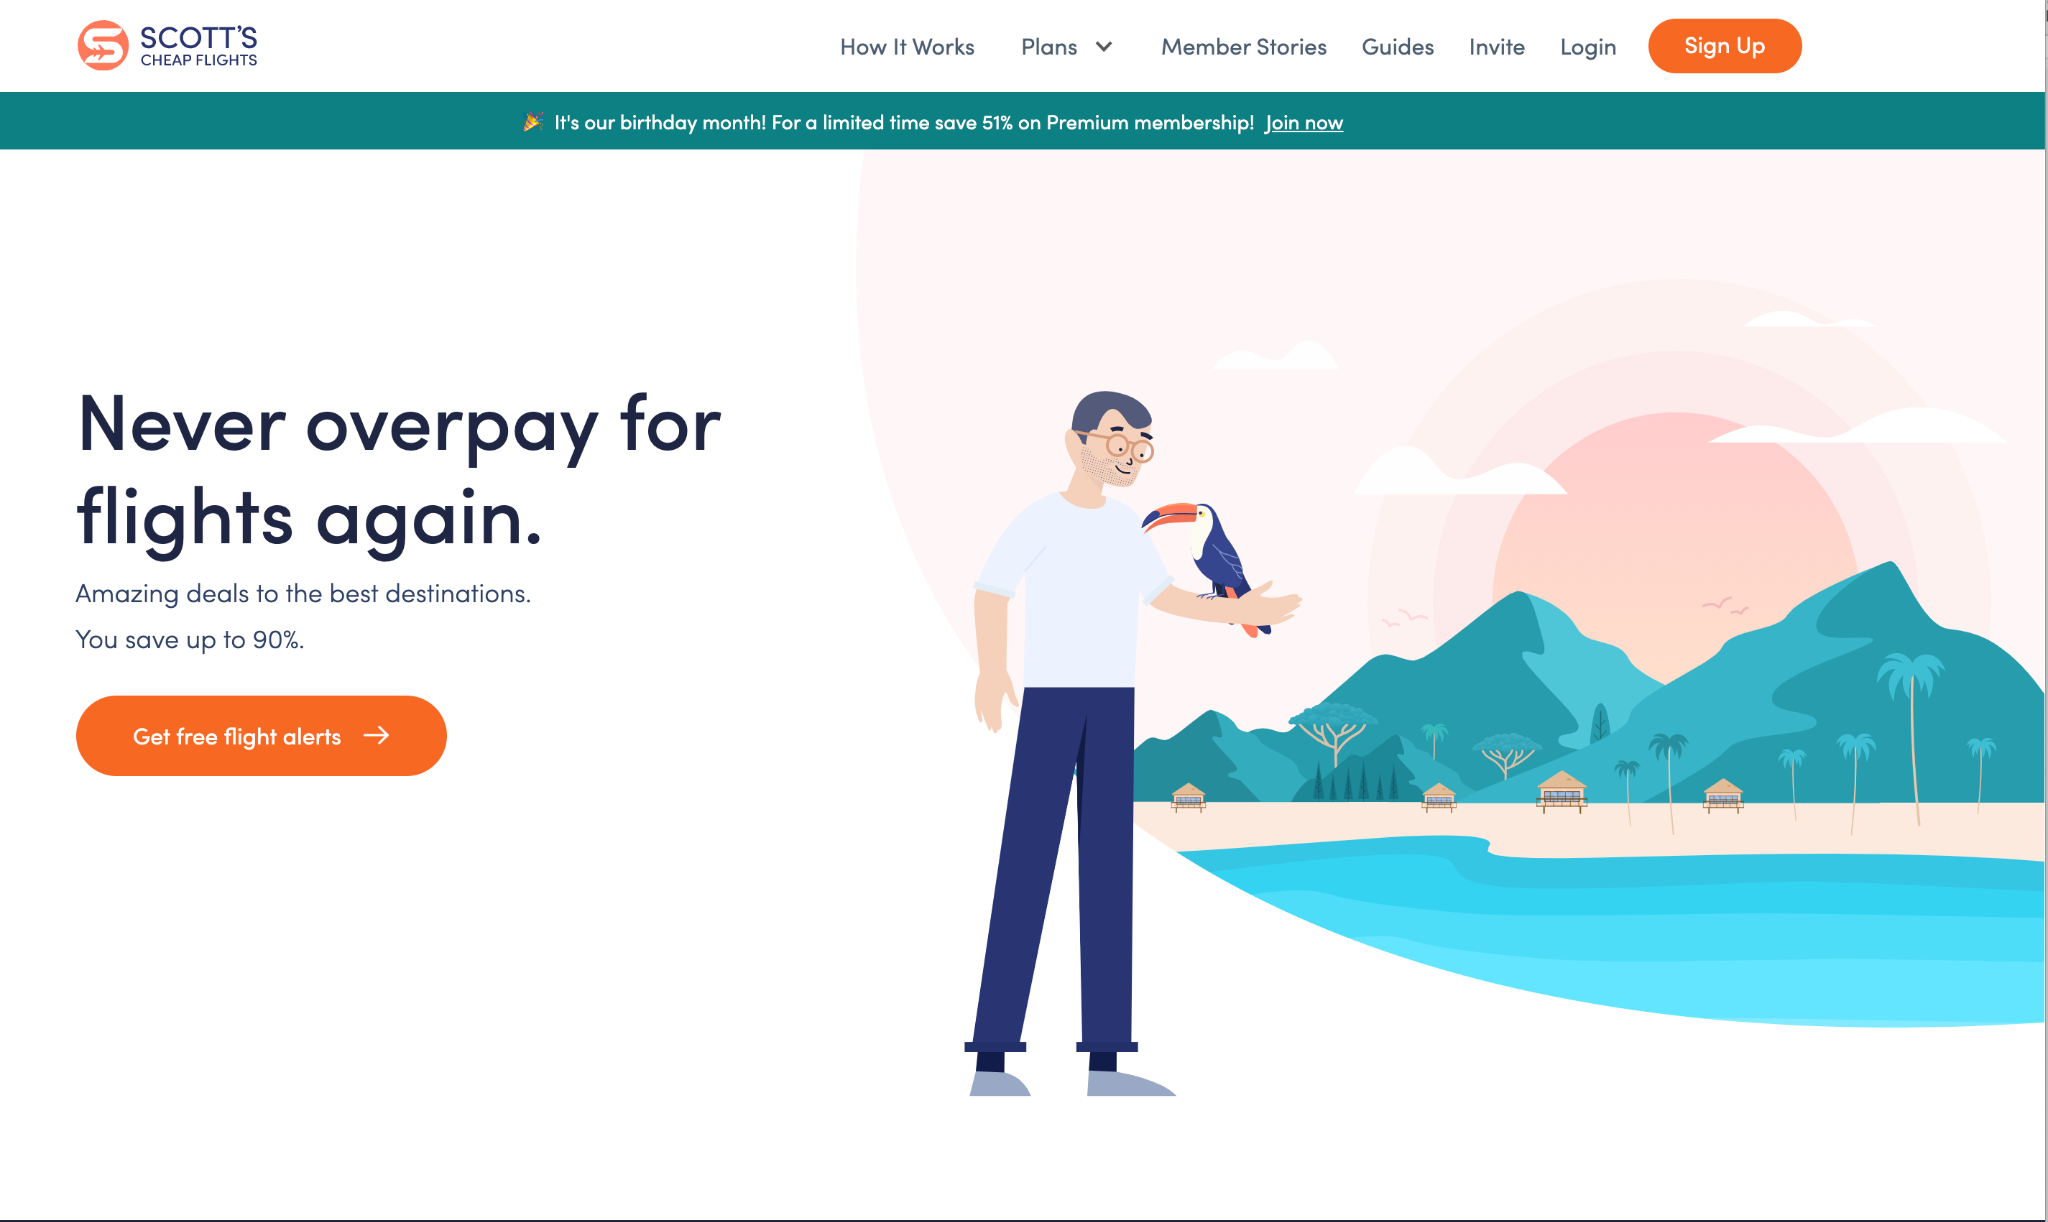 The home page for Scott's Cheap Flights shows nothing but immediate actions to: Get free flight alerts, learn how their service works, see service plans, read member stories, read guides, invite others, log in, or sign up.